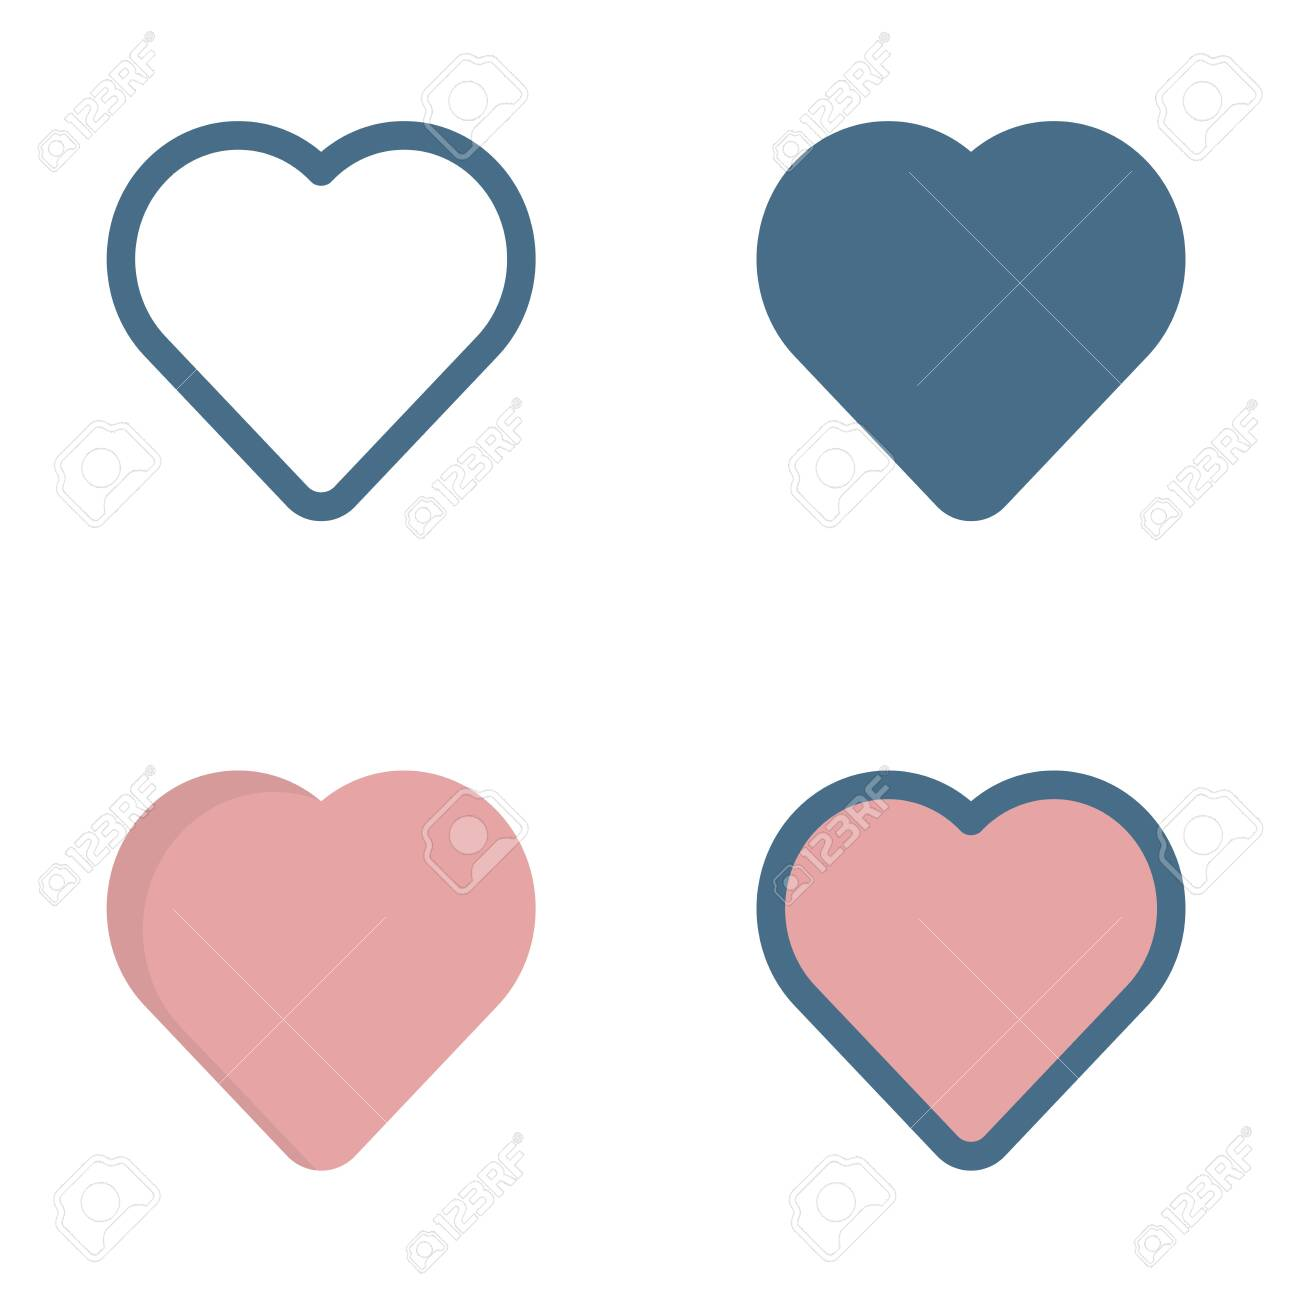 love icon in isolated on white background. for your web site design, logo, app, UI. Vector graphics illustration and editable stroke. EPS 10. - 141788810